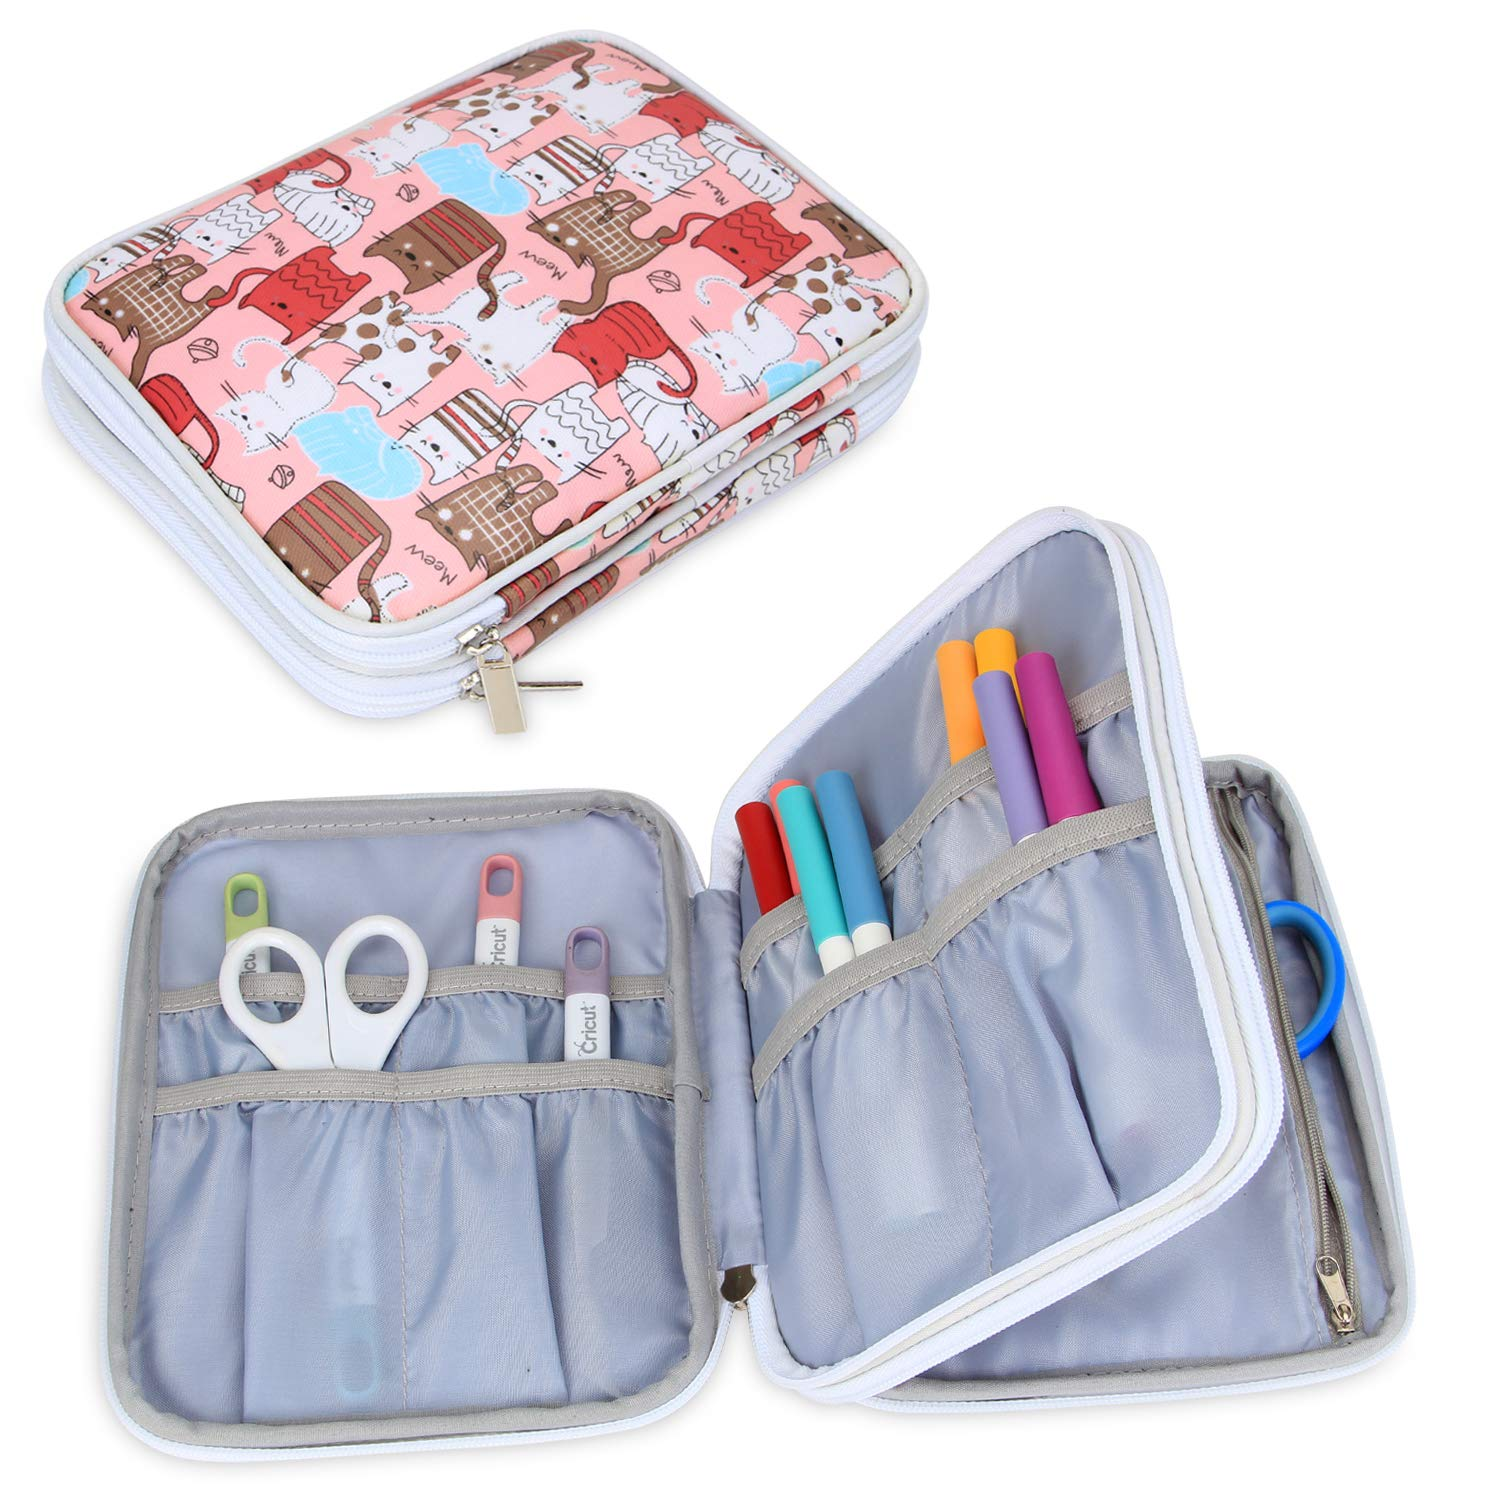 Yarwo Carrying Bag for Cricut Accessories, Organizer Case for Cricut Pen Set and Basic Tool Set Storage, Pink Cats Pattern, Bag Only